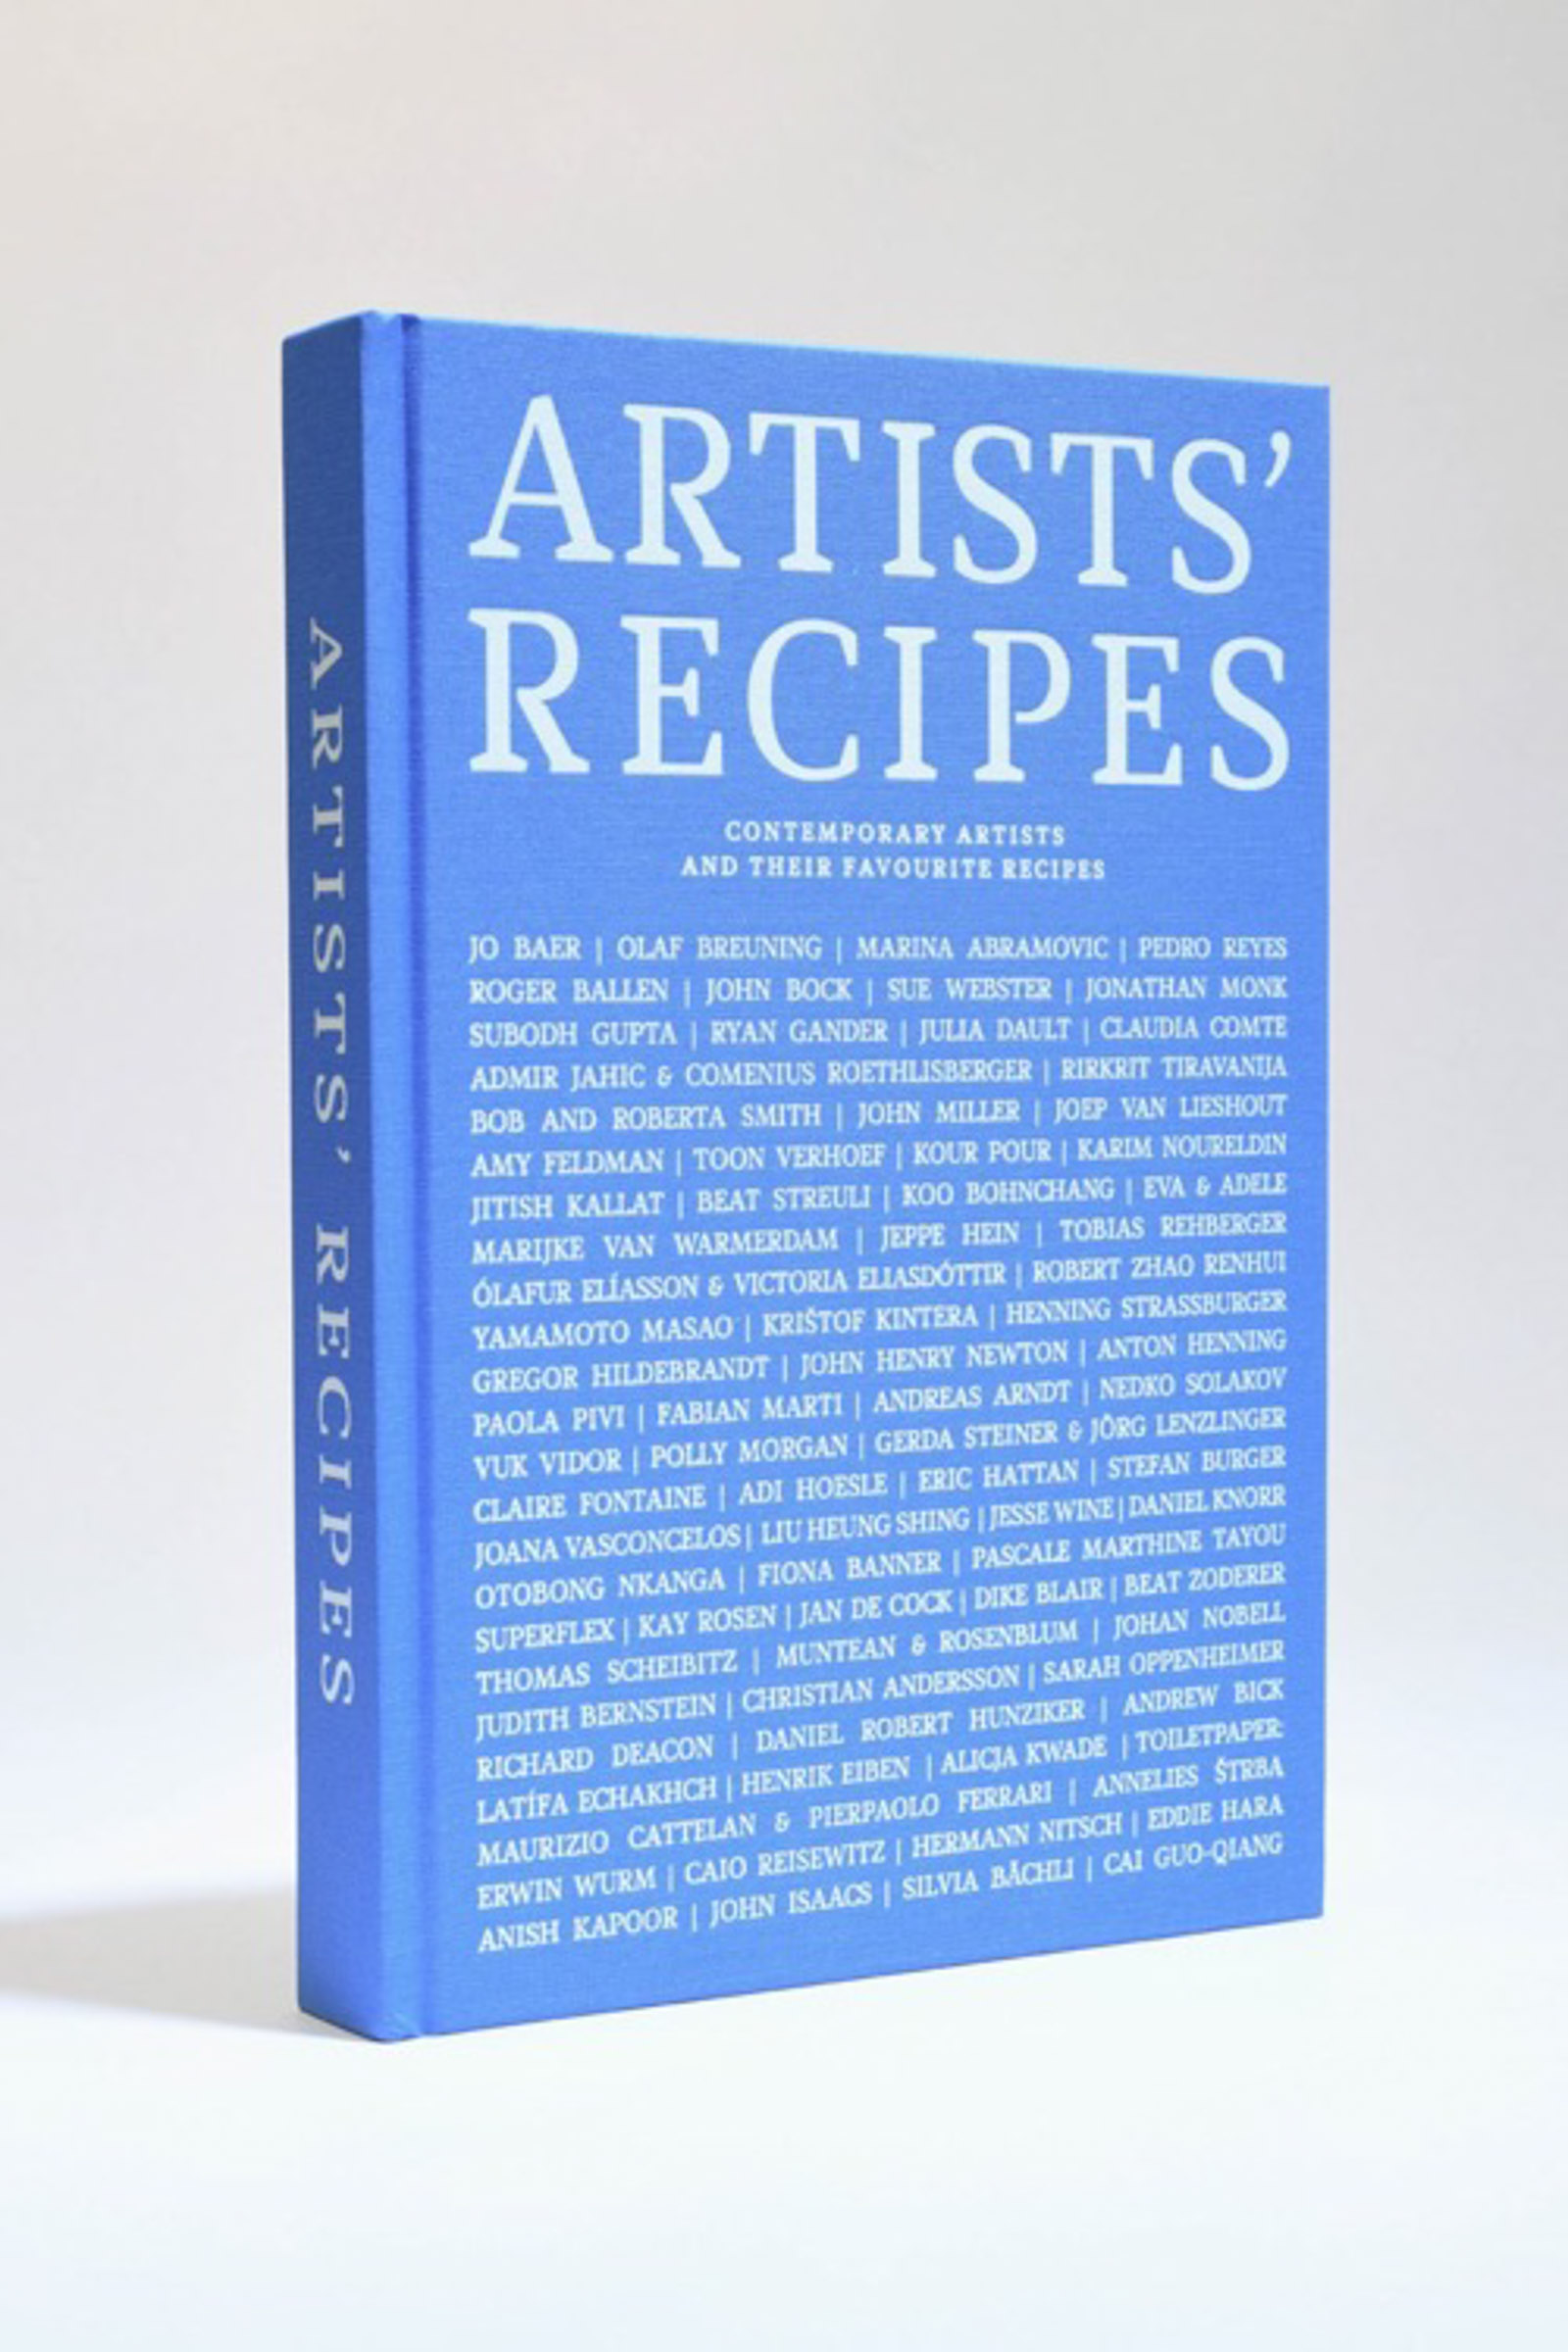 Book no. 5: Artists' Recipes